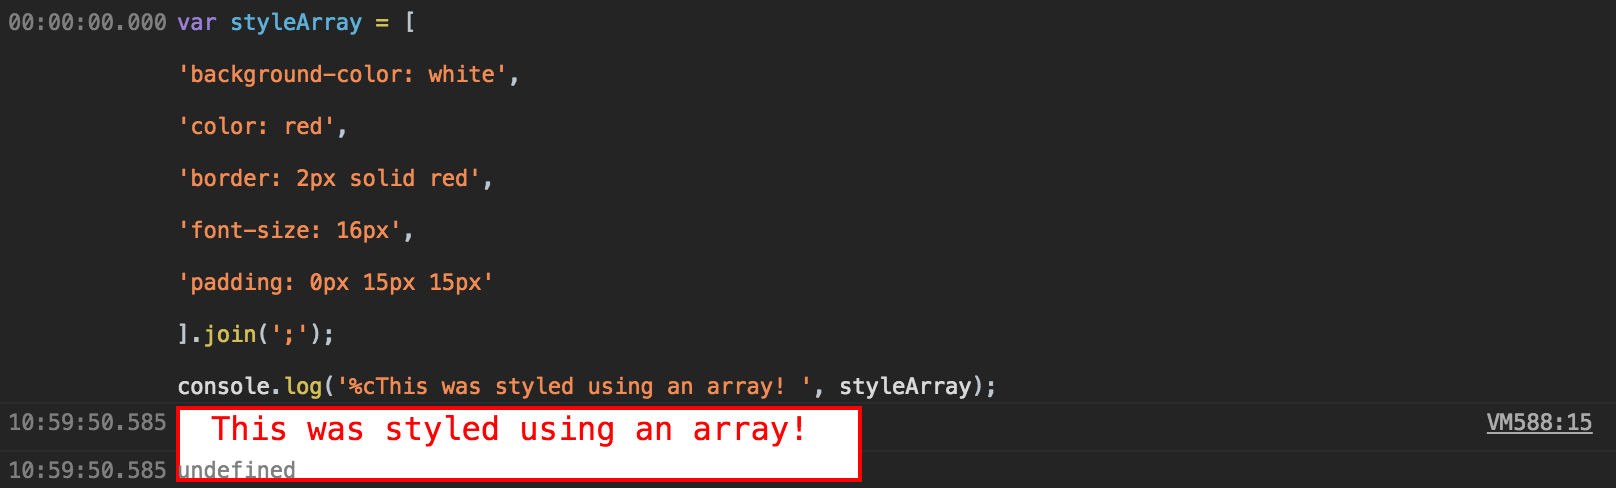 Using a style array